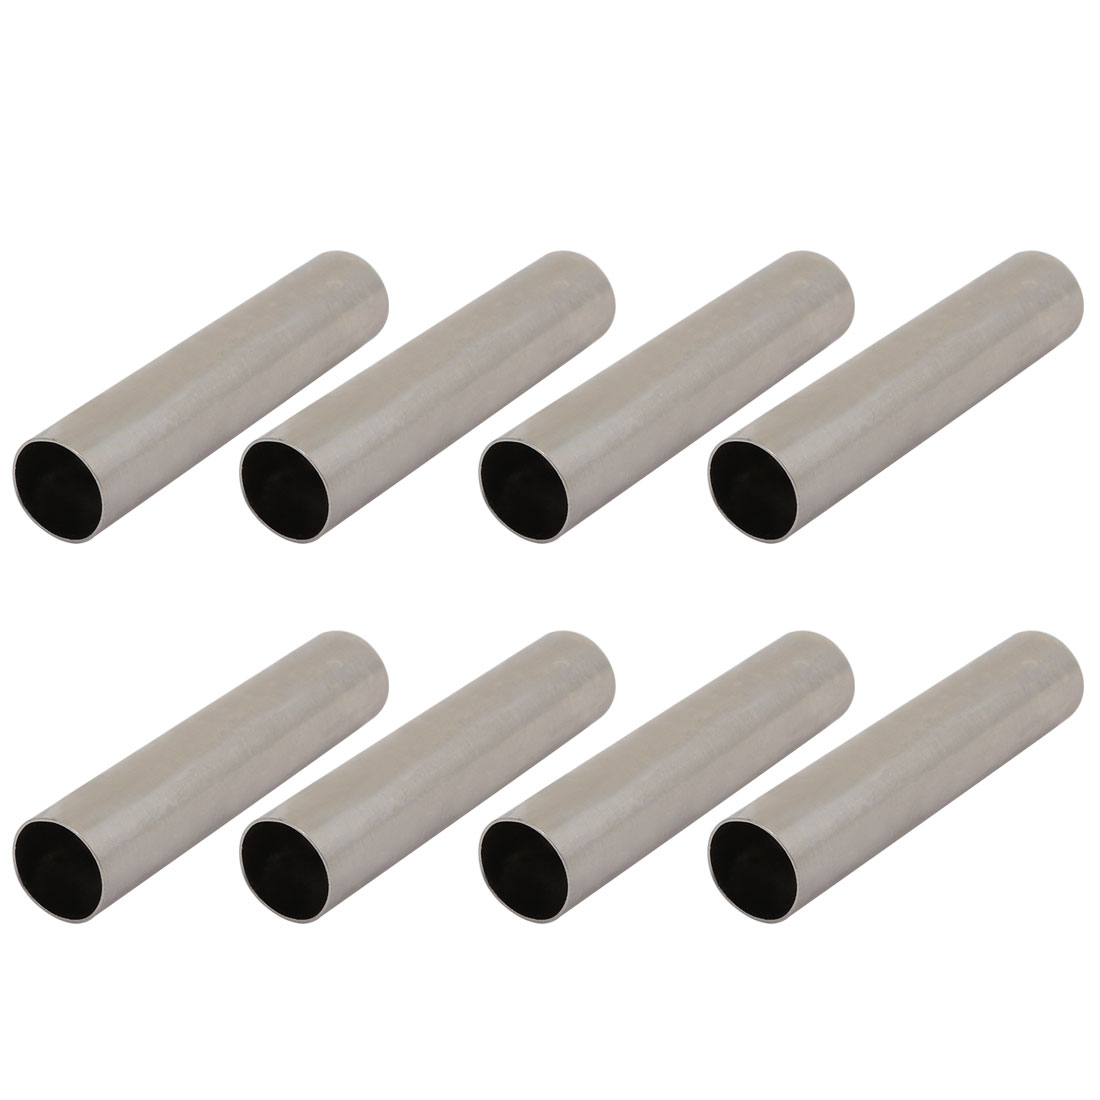 8pcs Chandelier Candle Light Cover Sleeve Silver Tone 12.7mm Outer Dia 60mm Long